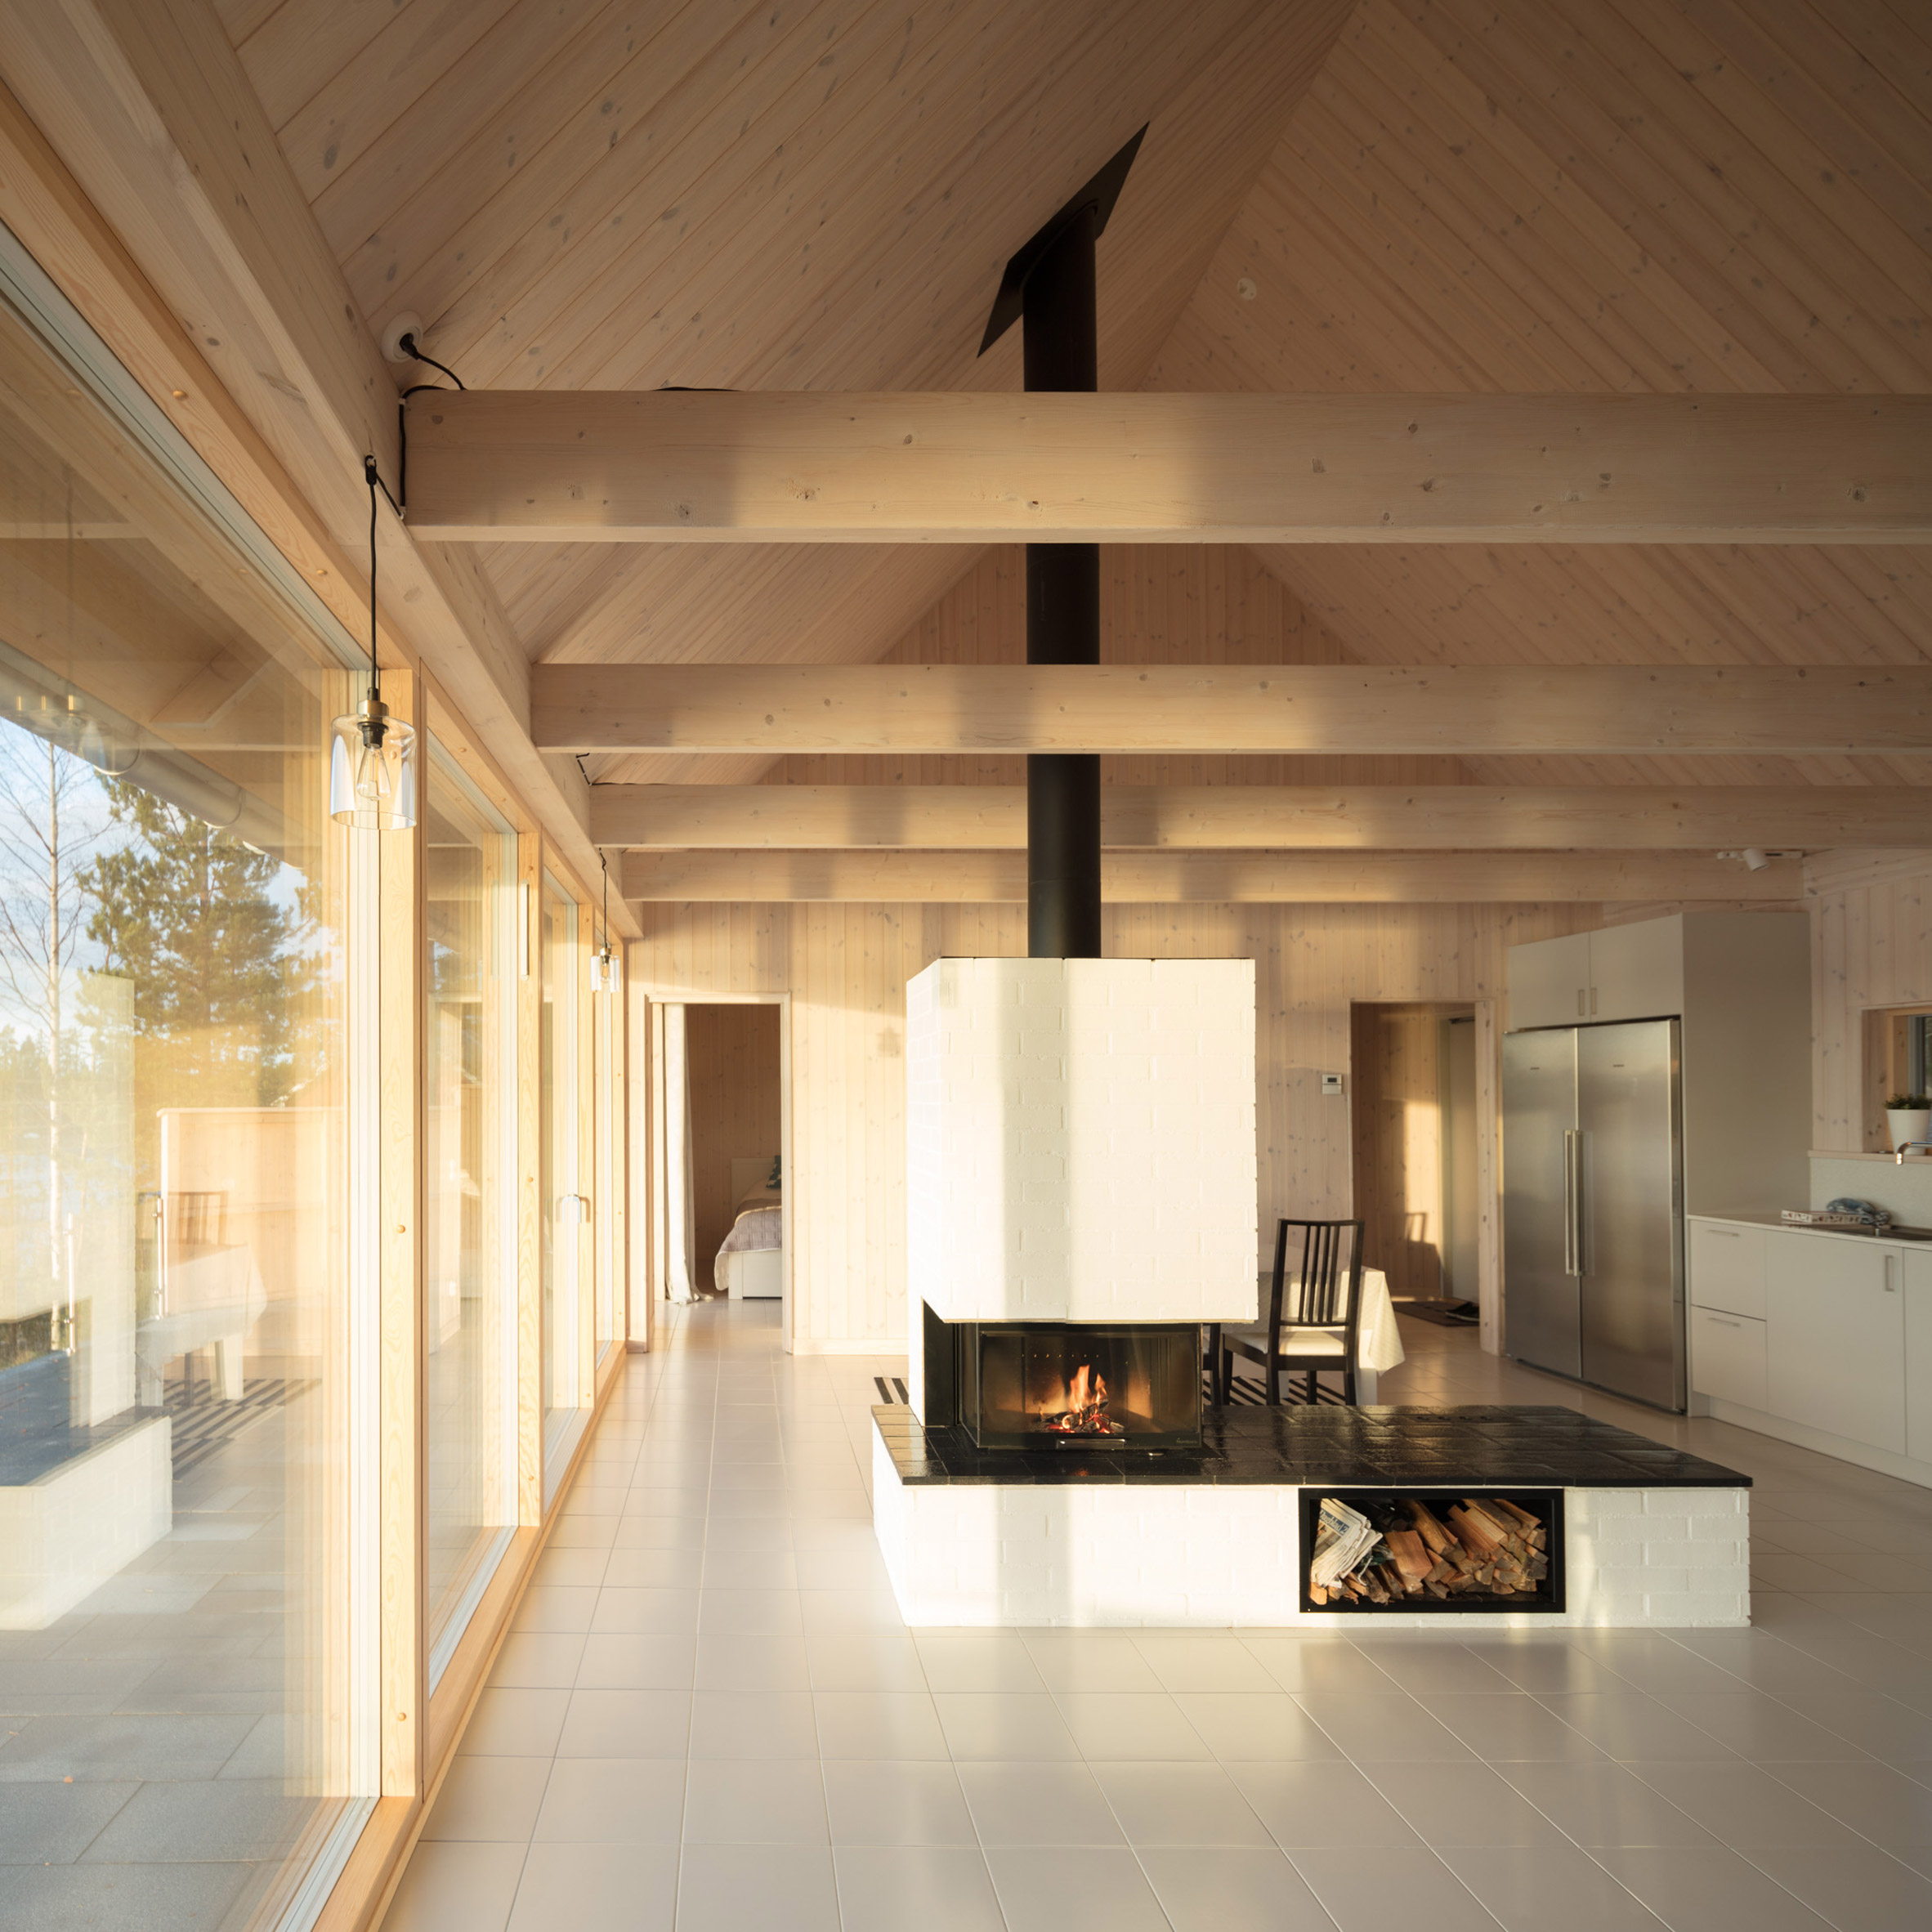 House design and architecture in Sweden | Dezeen